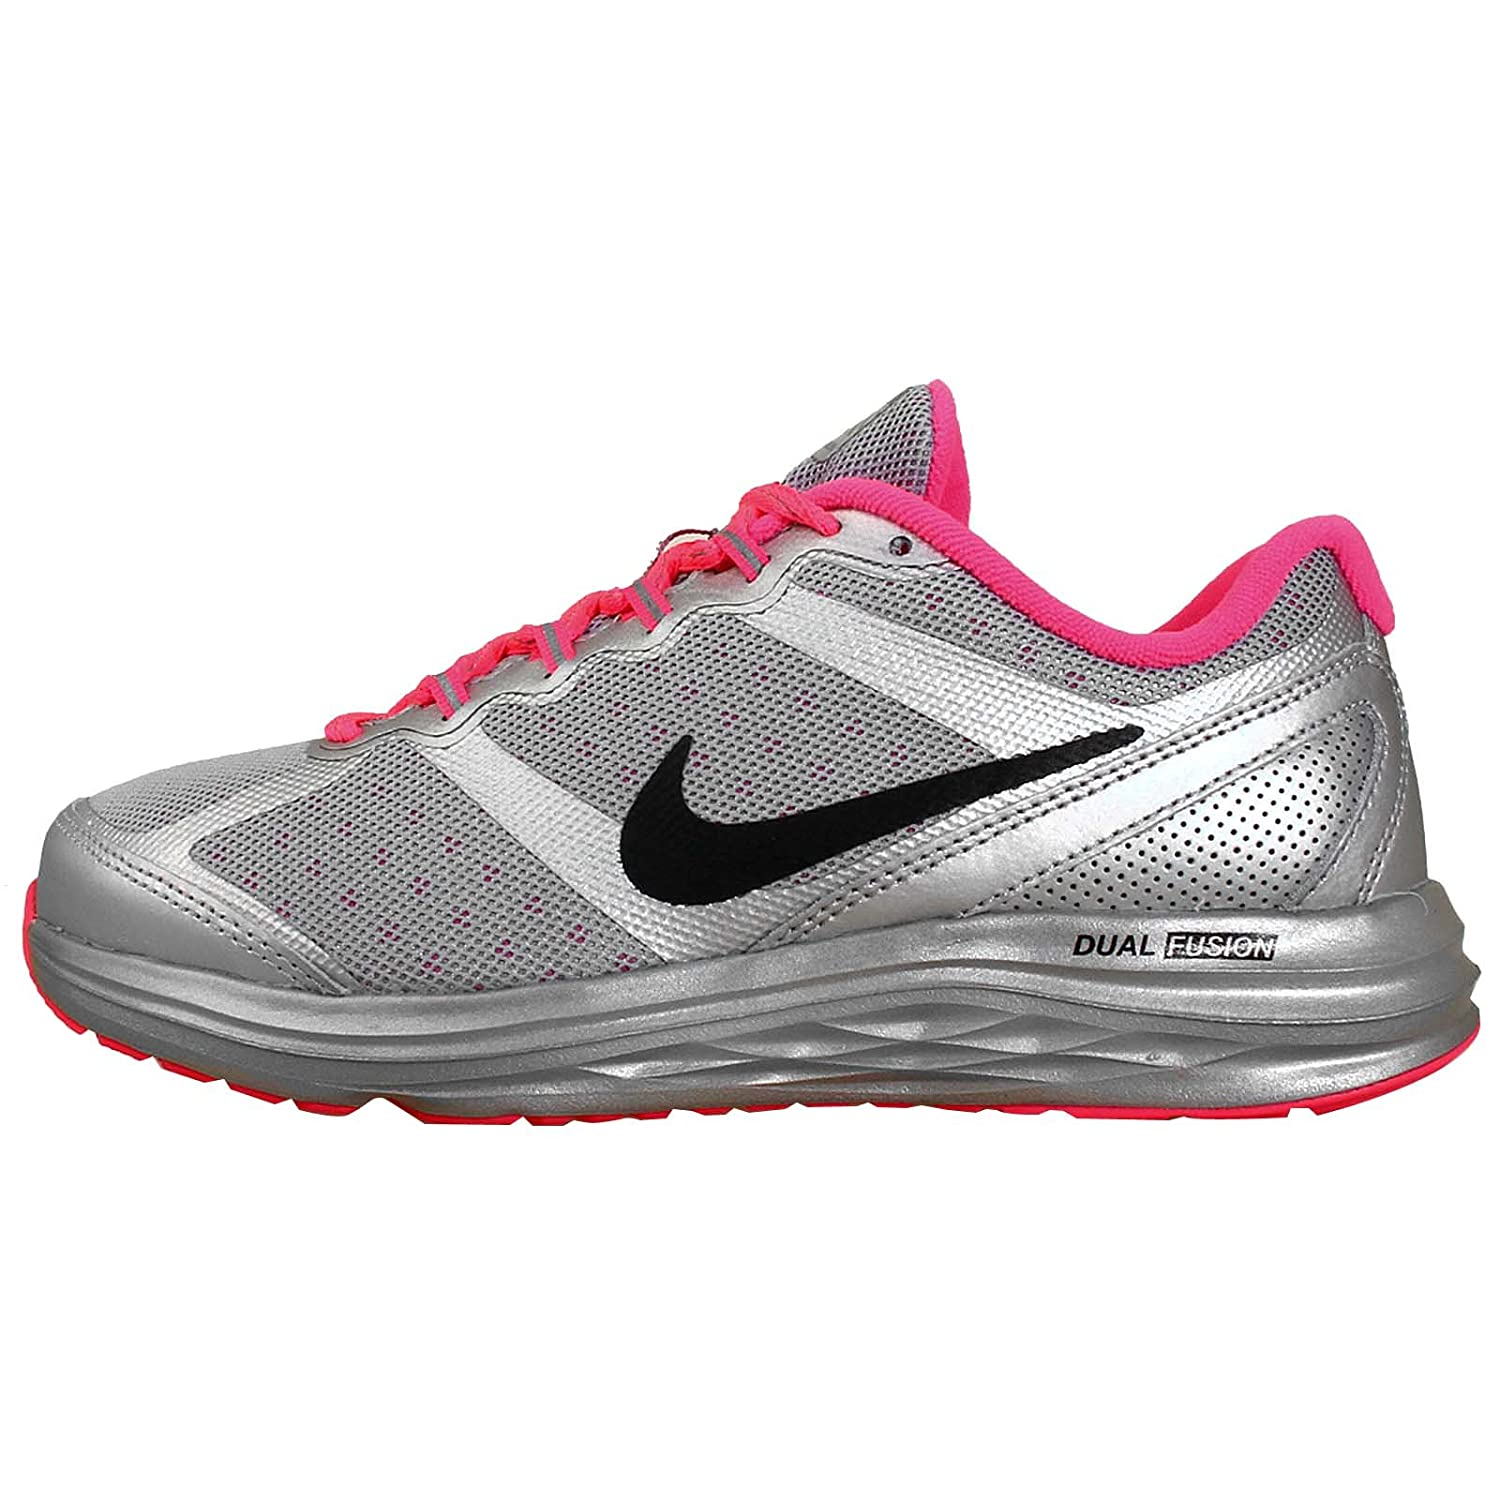 Nike Dual Fusion Run 3 Flash women's running shoes (black)